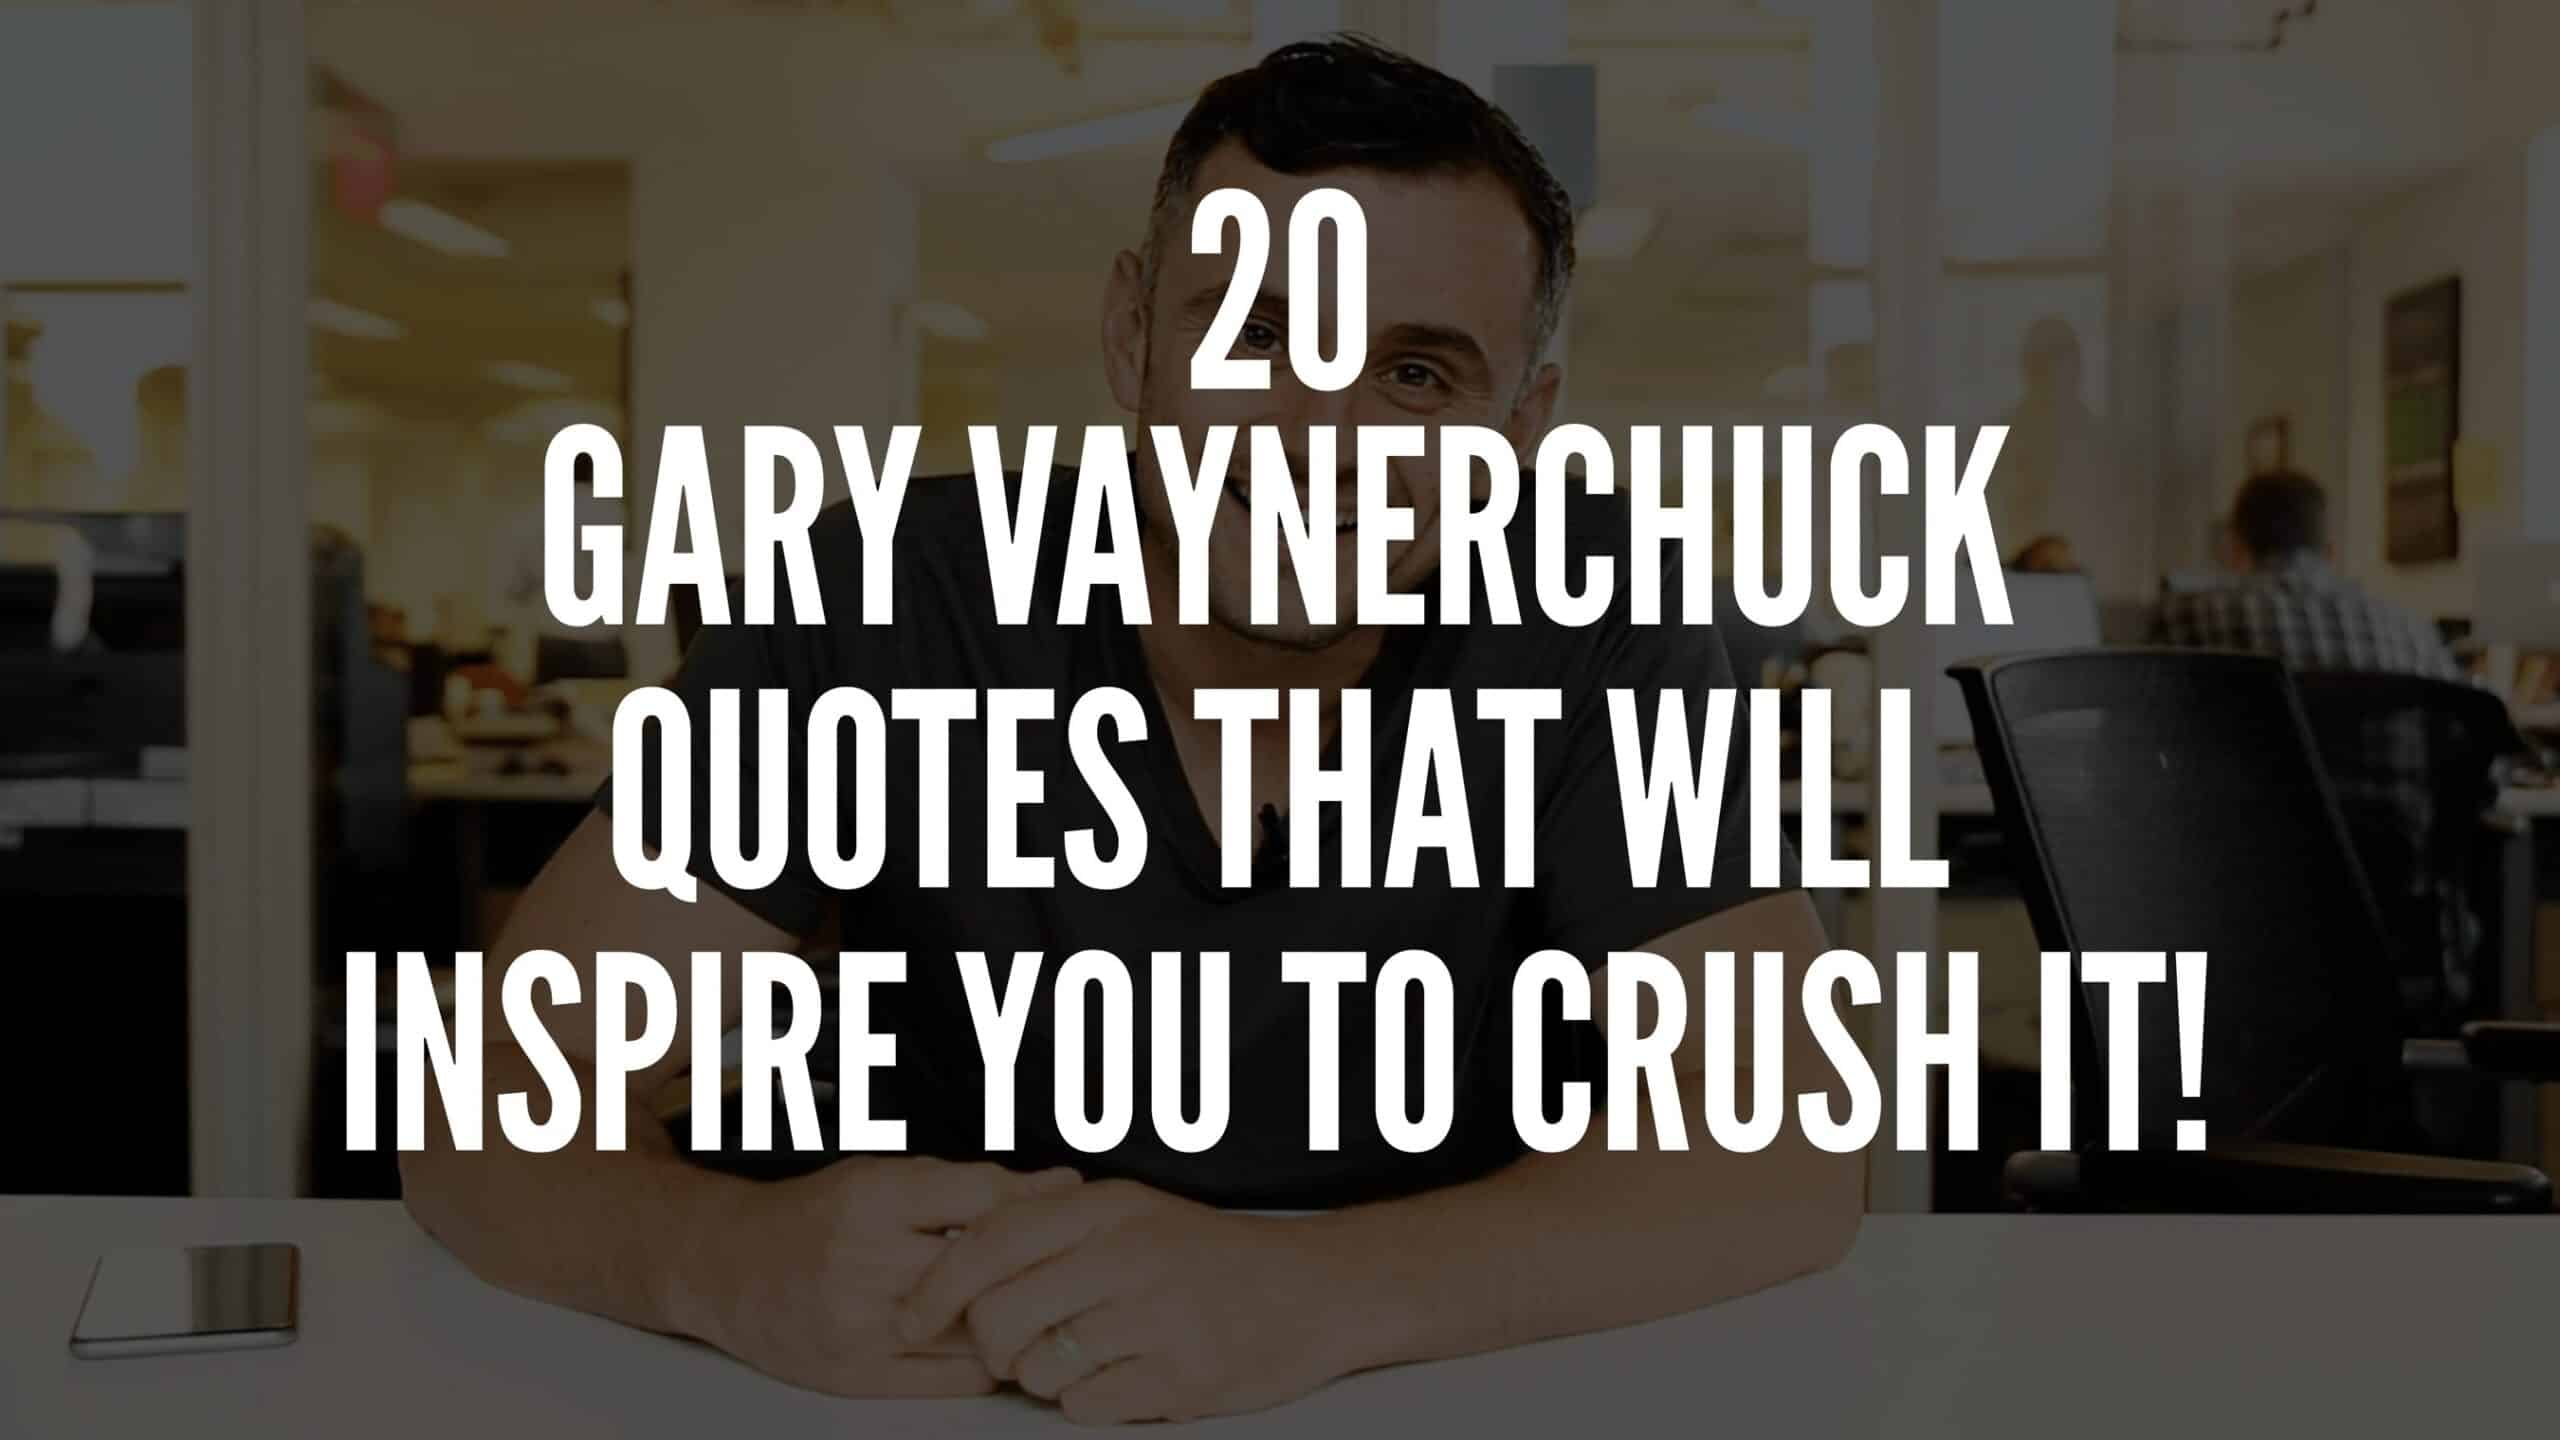 20 Gary Vaynerchuck Quotes That Will Inspire You To Crush It